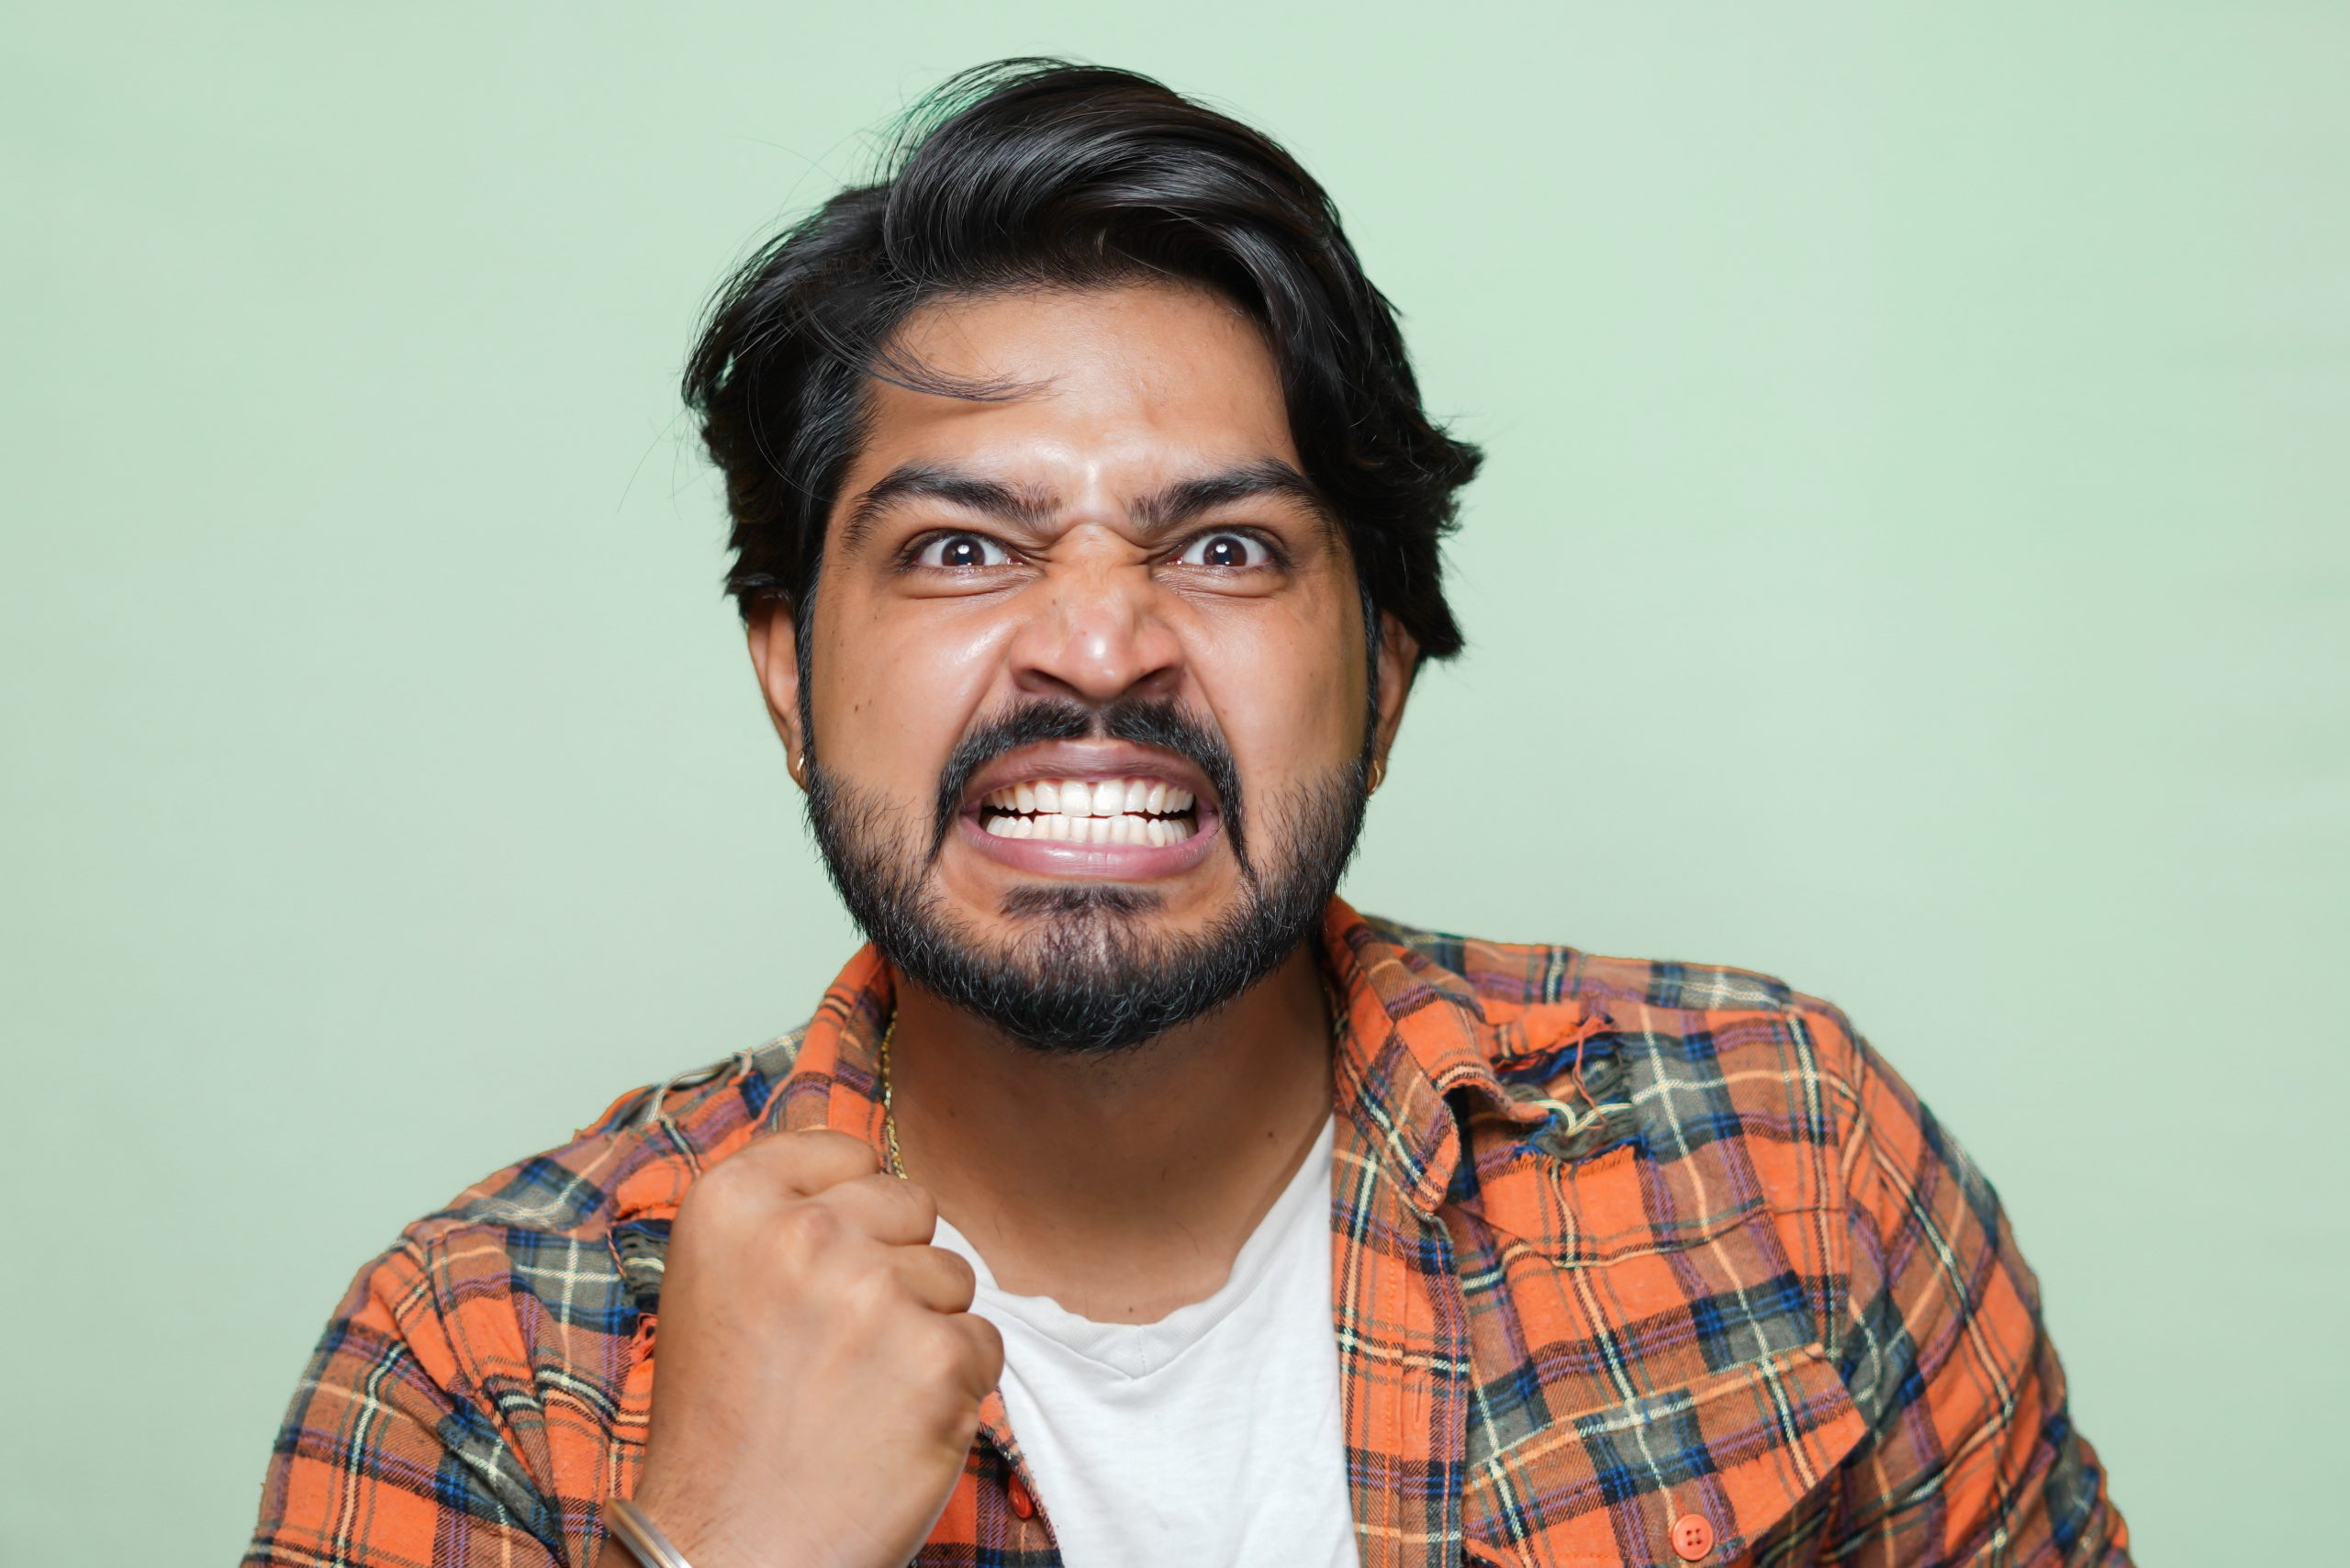 Male anger expression